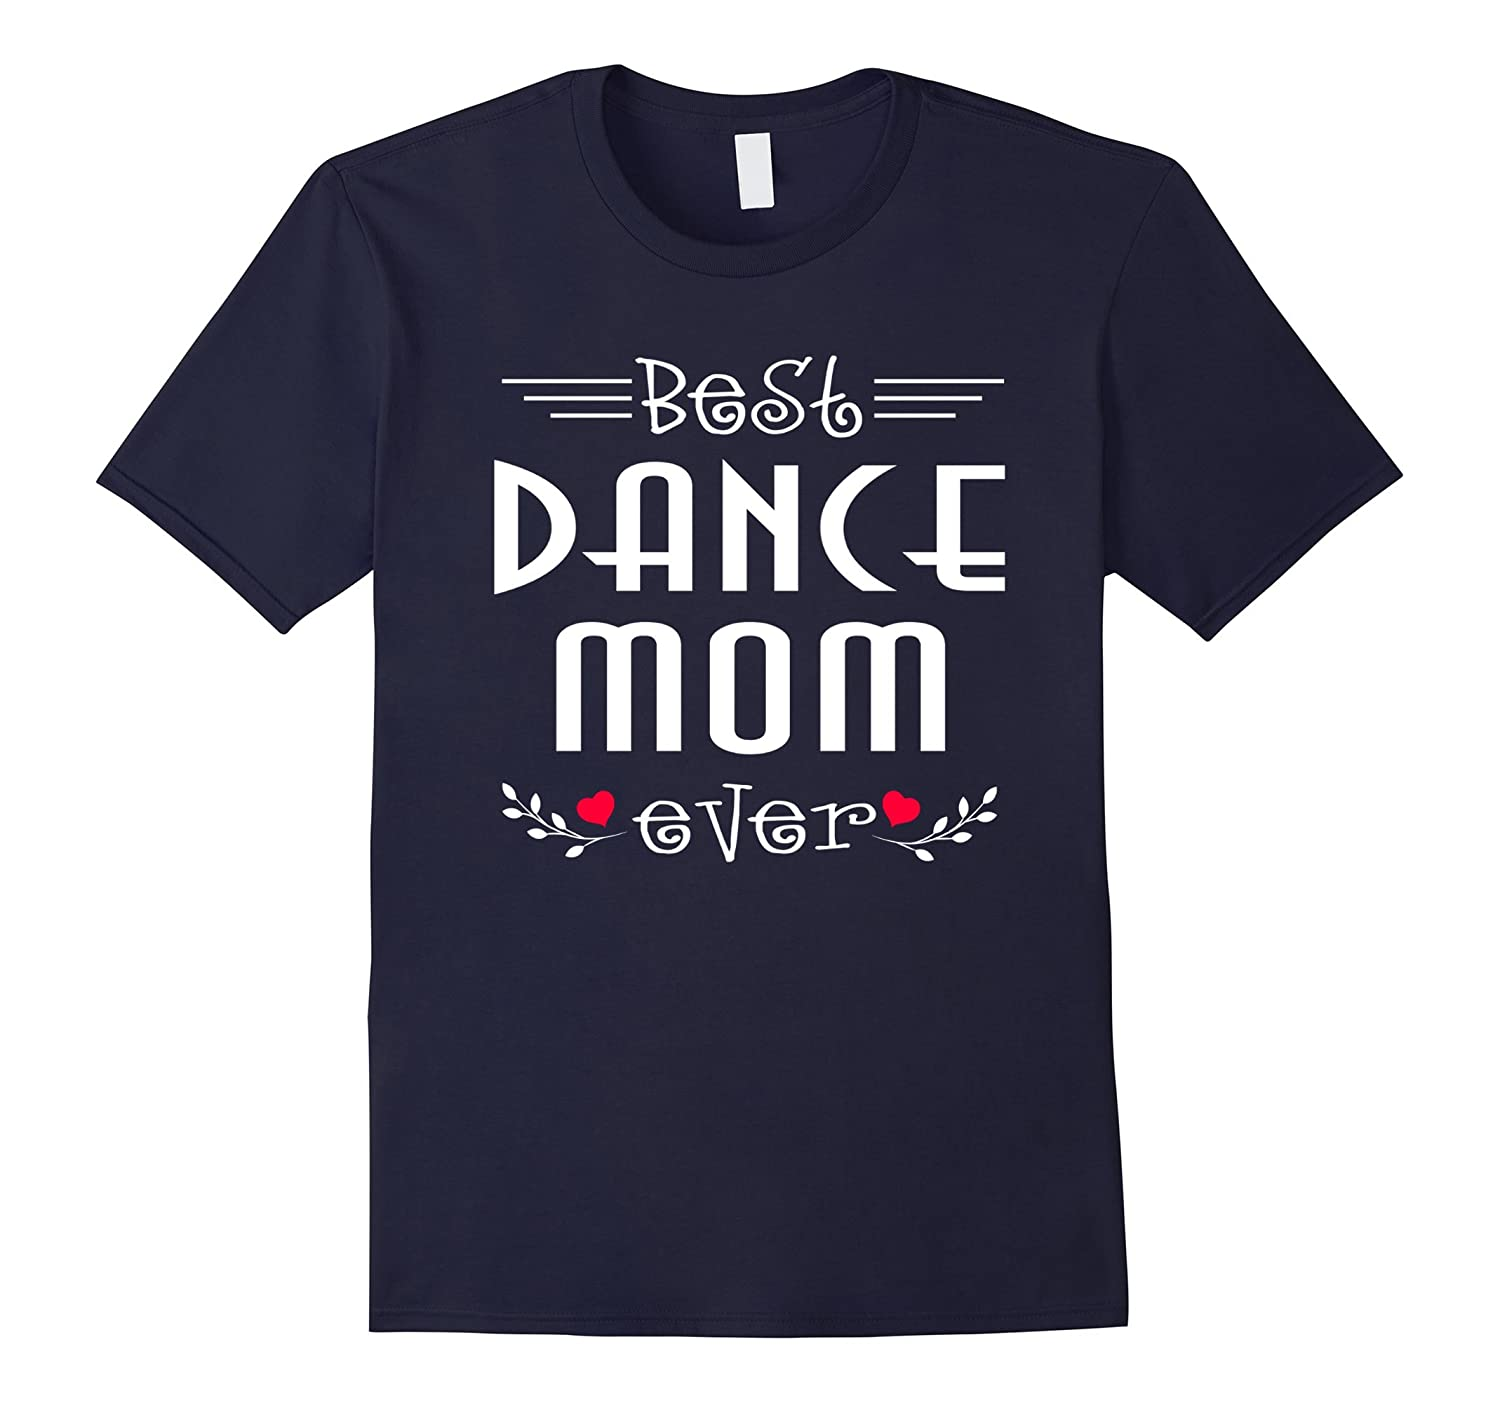 Best Dance Mom Ever Tshirt Gift For Dance Mom-Vaci